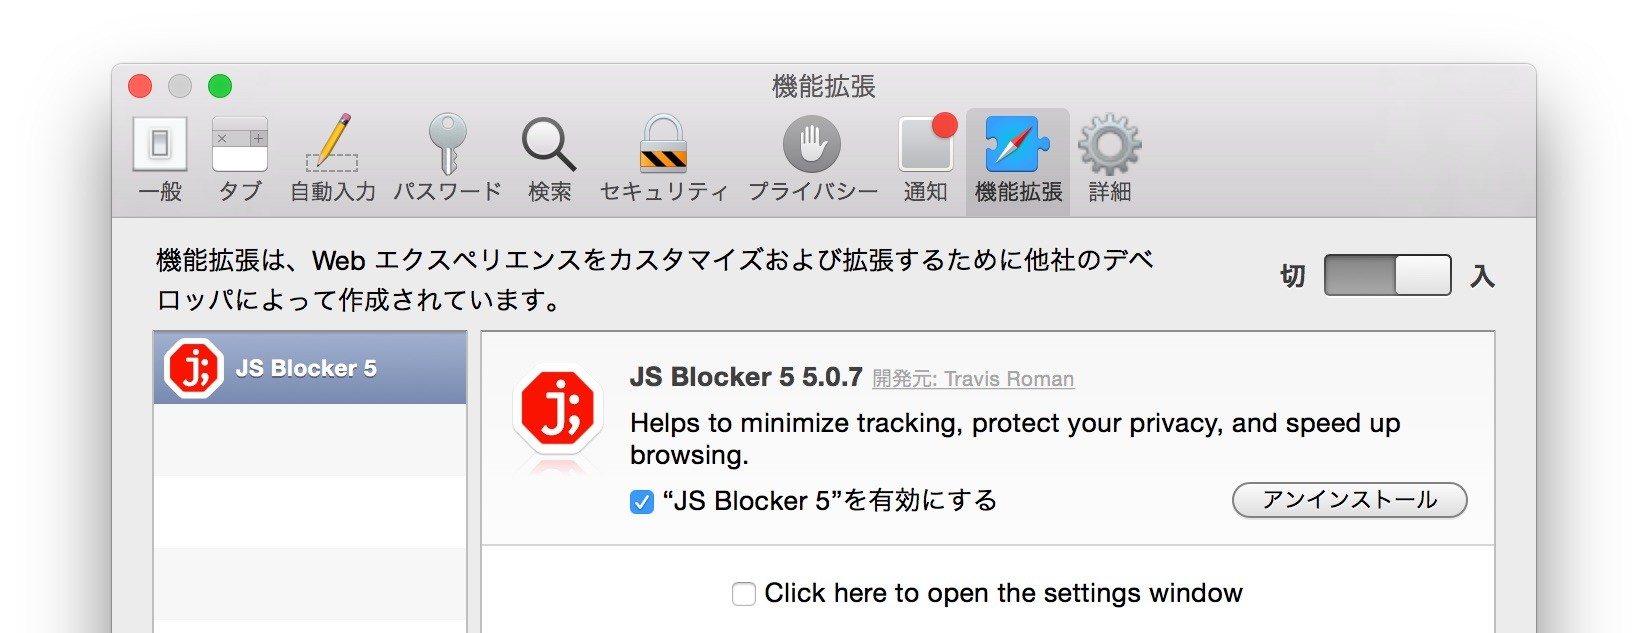 JS-Blocker-Hero